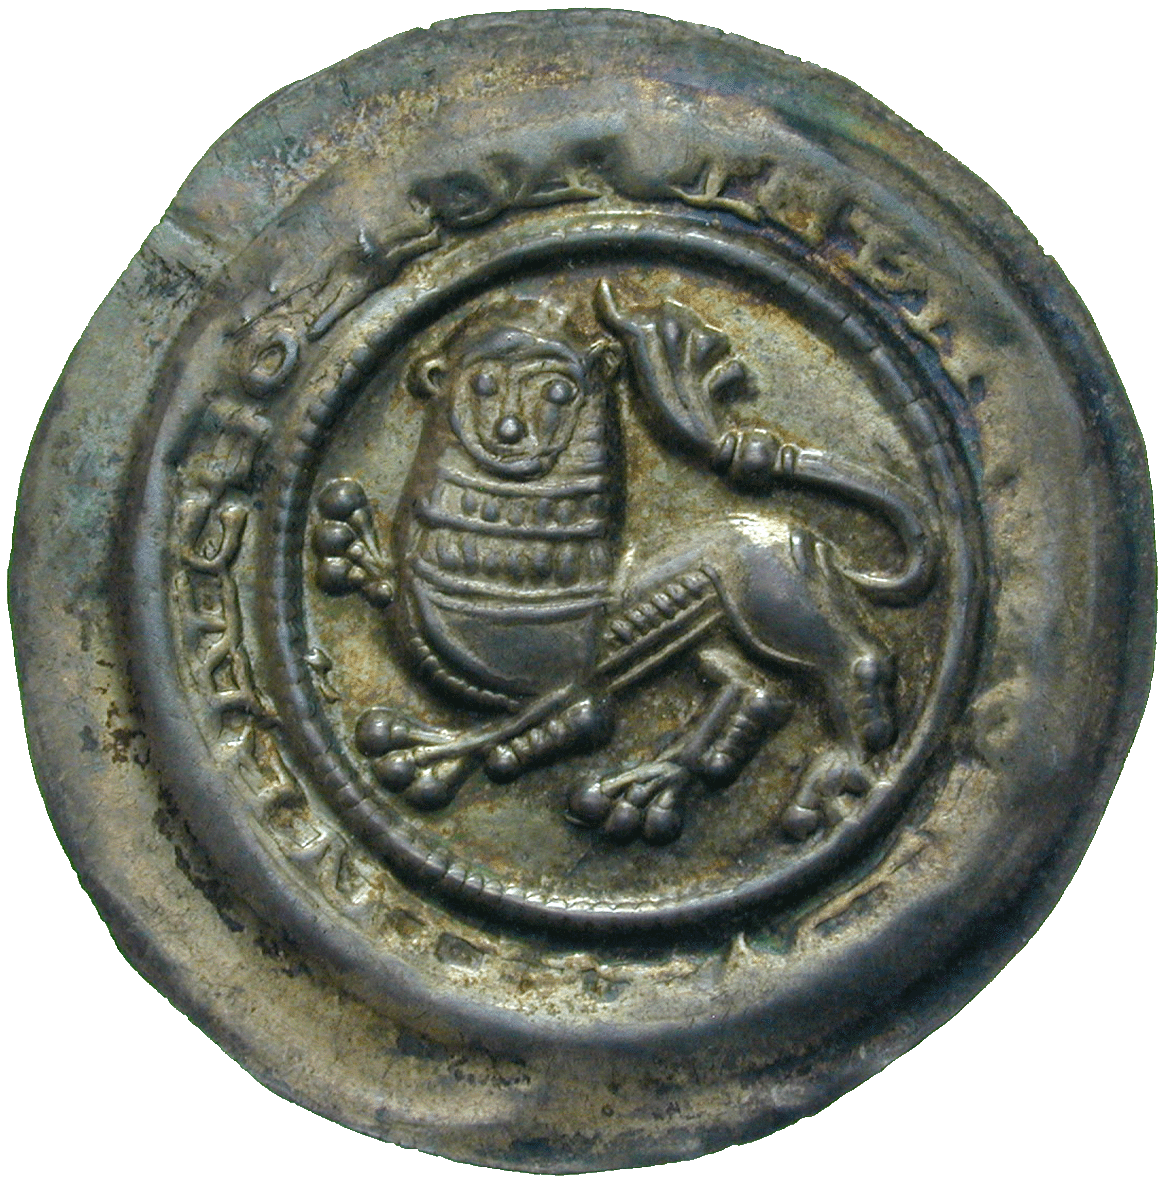 Holy Roman Empire, Duchy of Braunschweig, Henry the Lion, Bracteate (obverse)